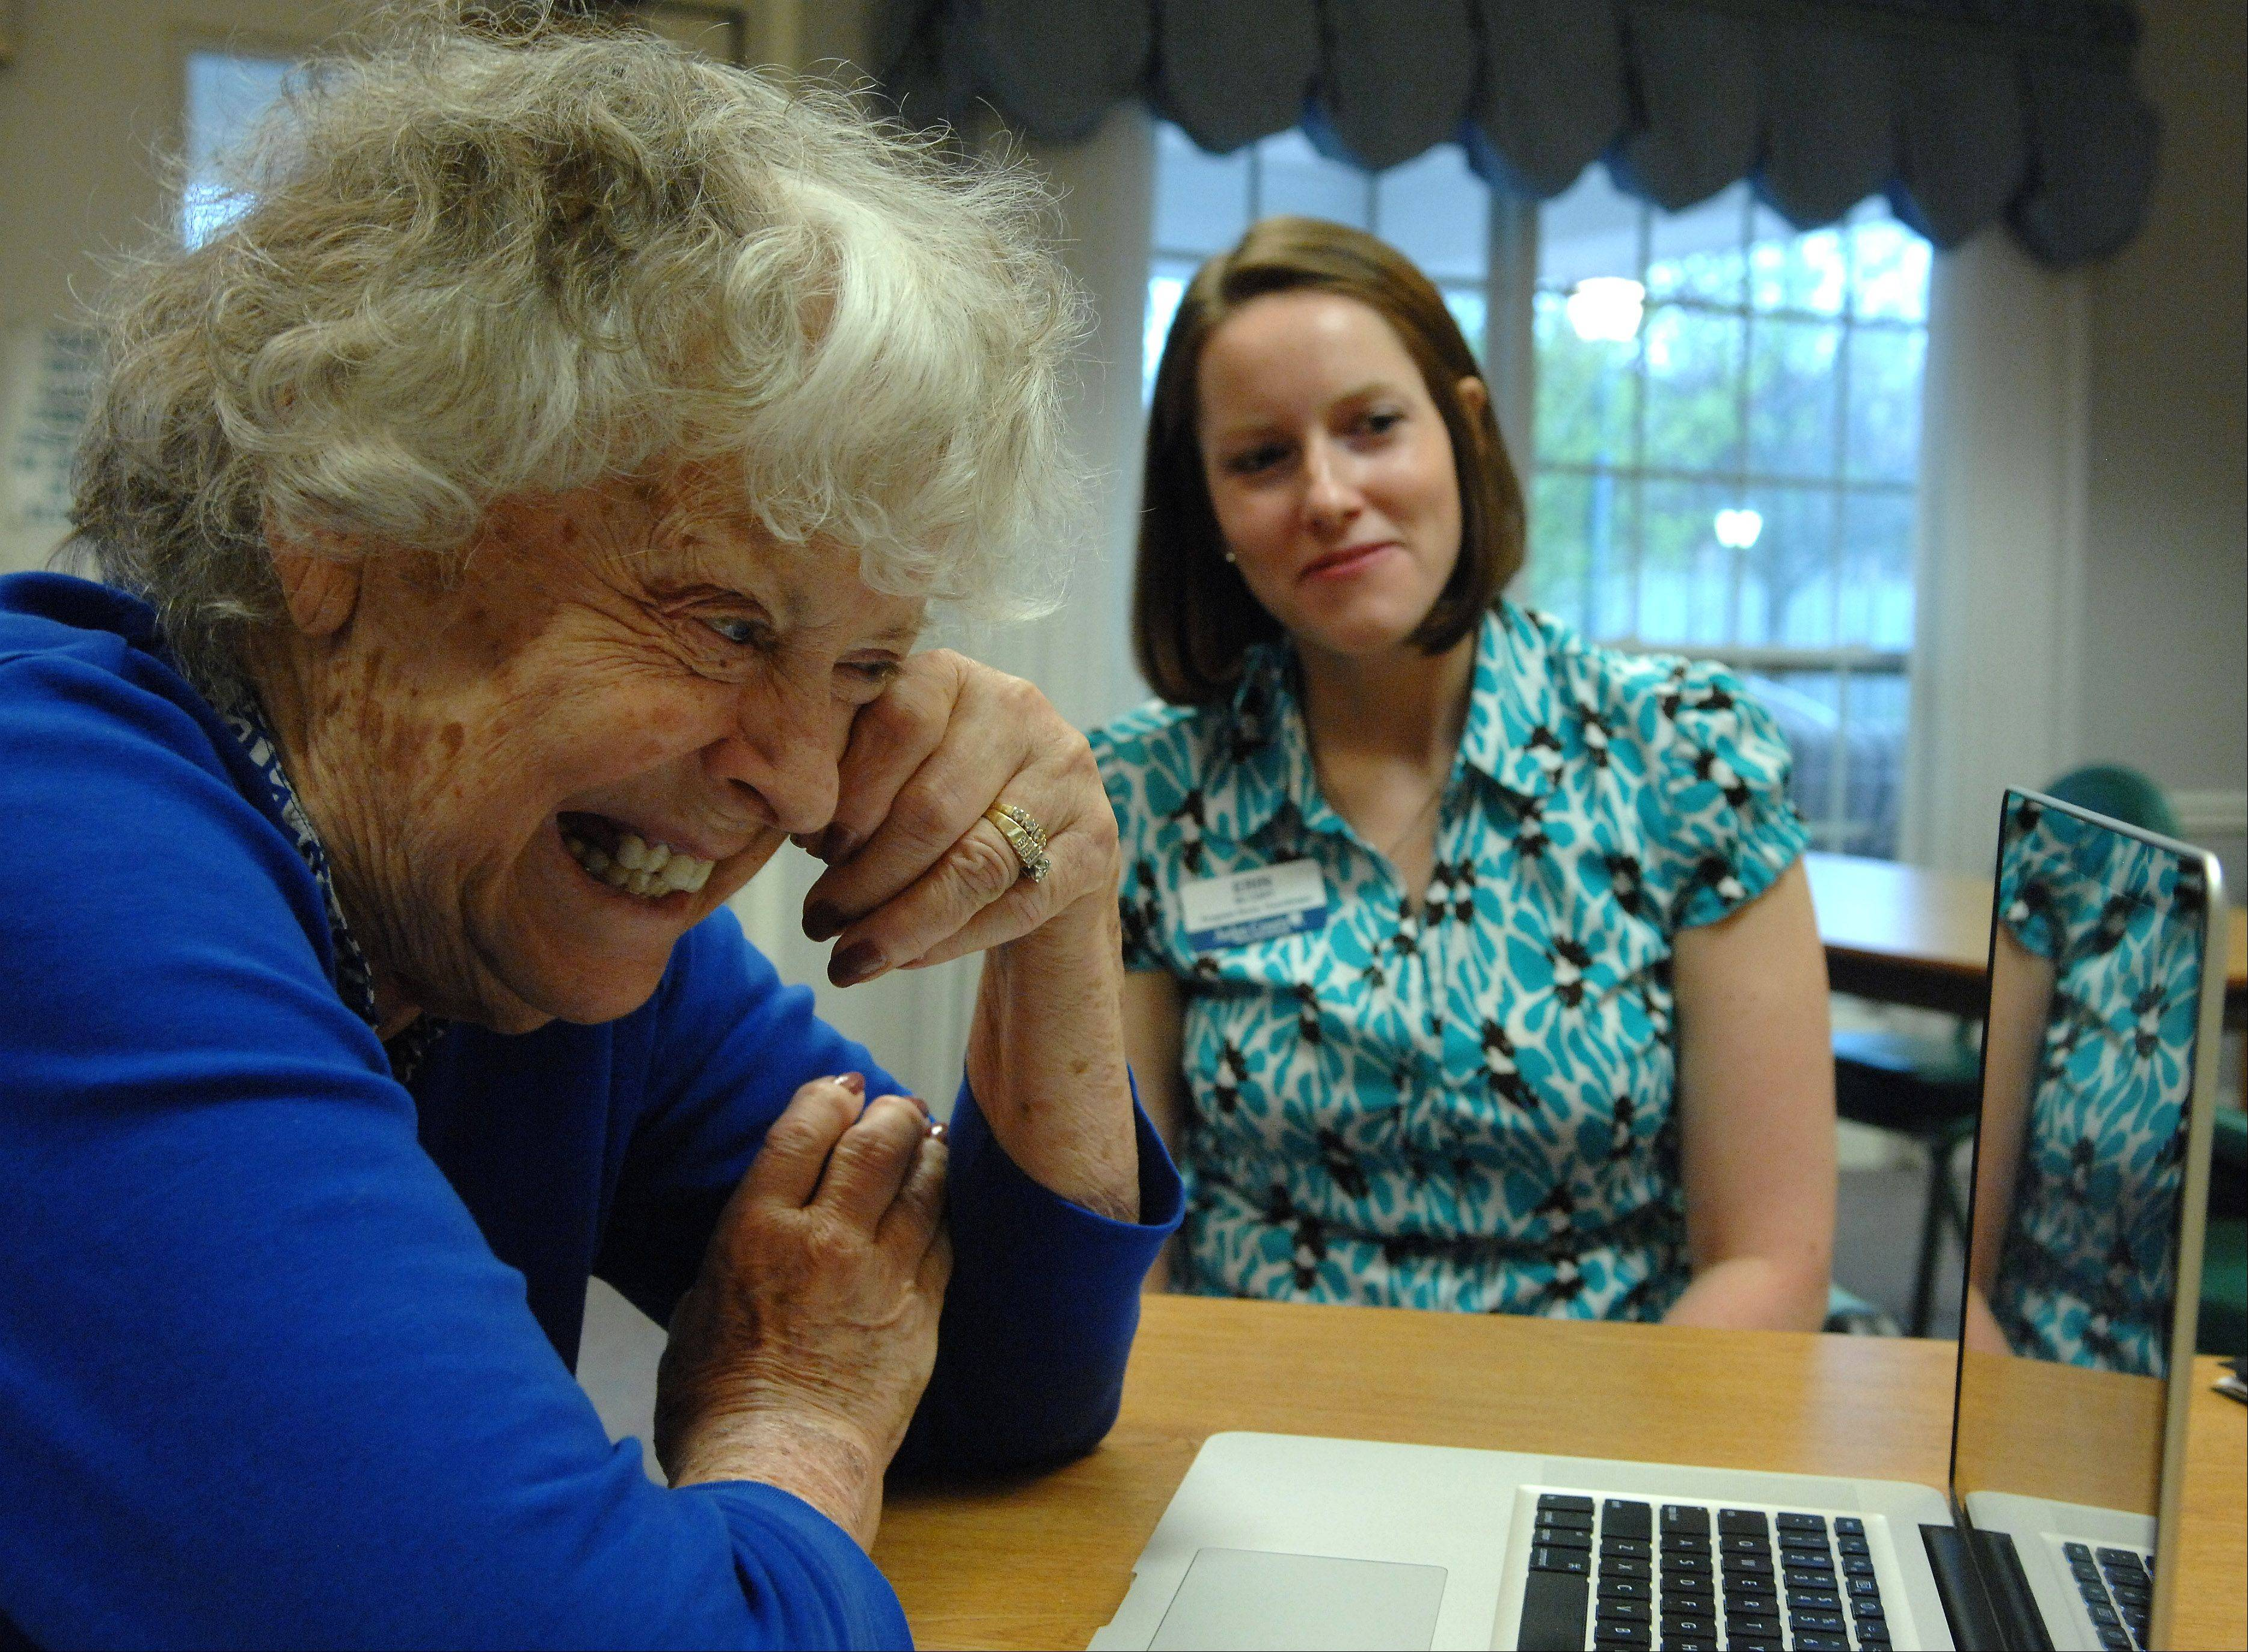 Arden Courts Memory Care resident Janie Smals wipes away a tear while she Skypes with her daughter in Florida as Erin McCart looks on. McCart set up weekly meetings so Smals could connect with her daughter and grandkids.